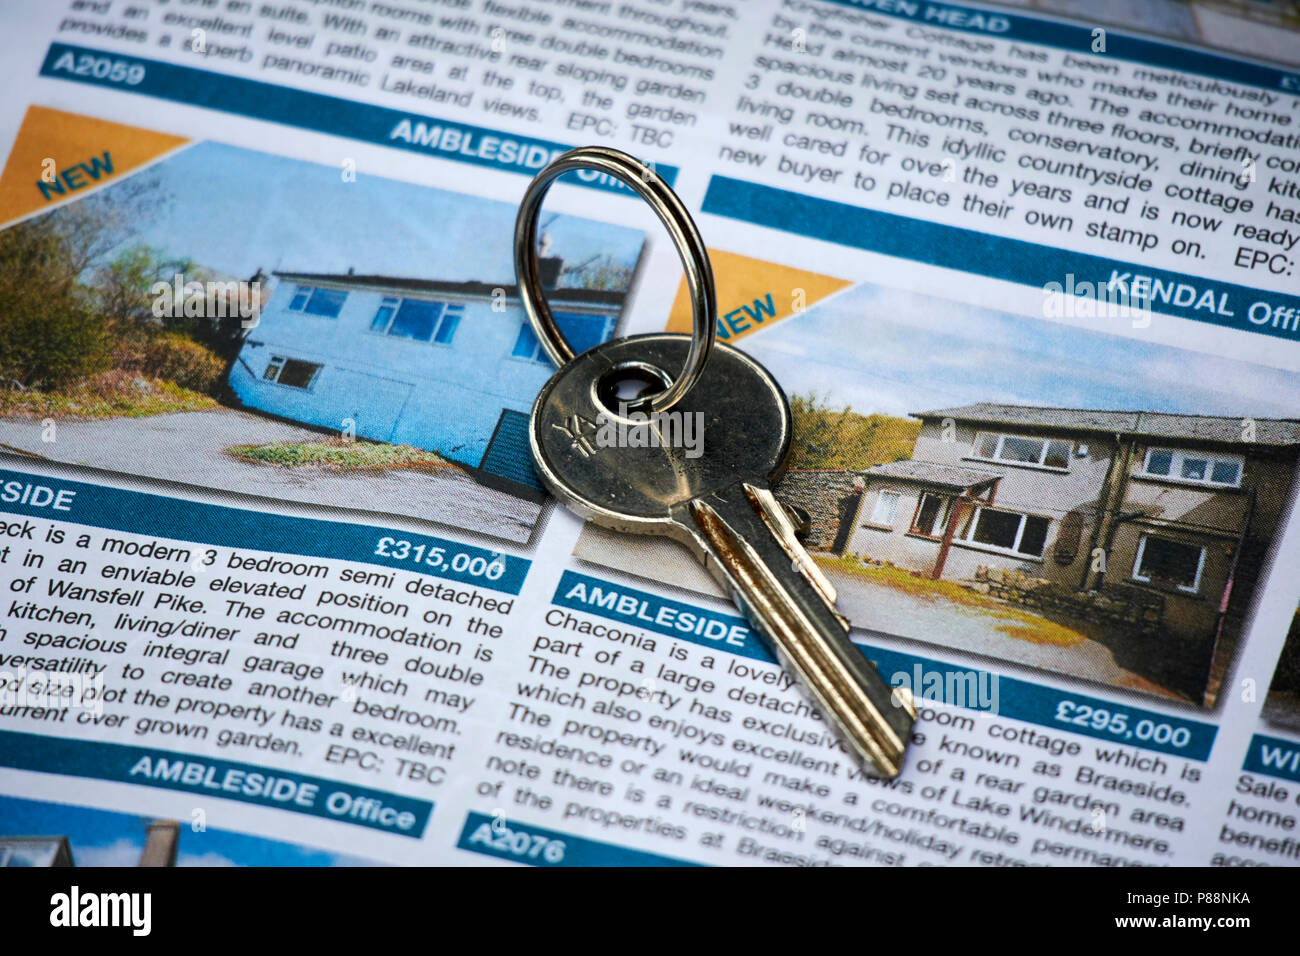 single key on top of adverts for property in the lake district cumbria england uk - Stock Image